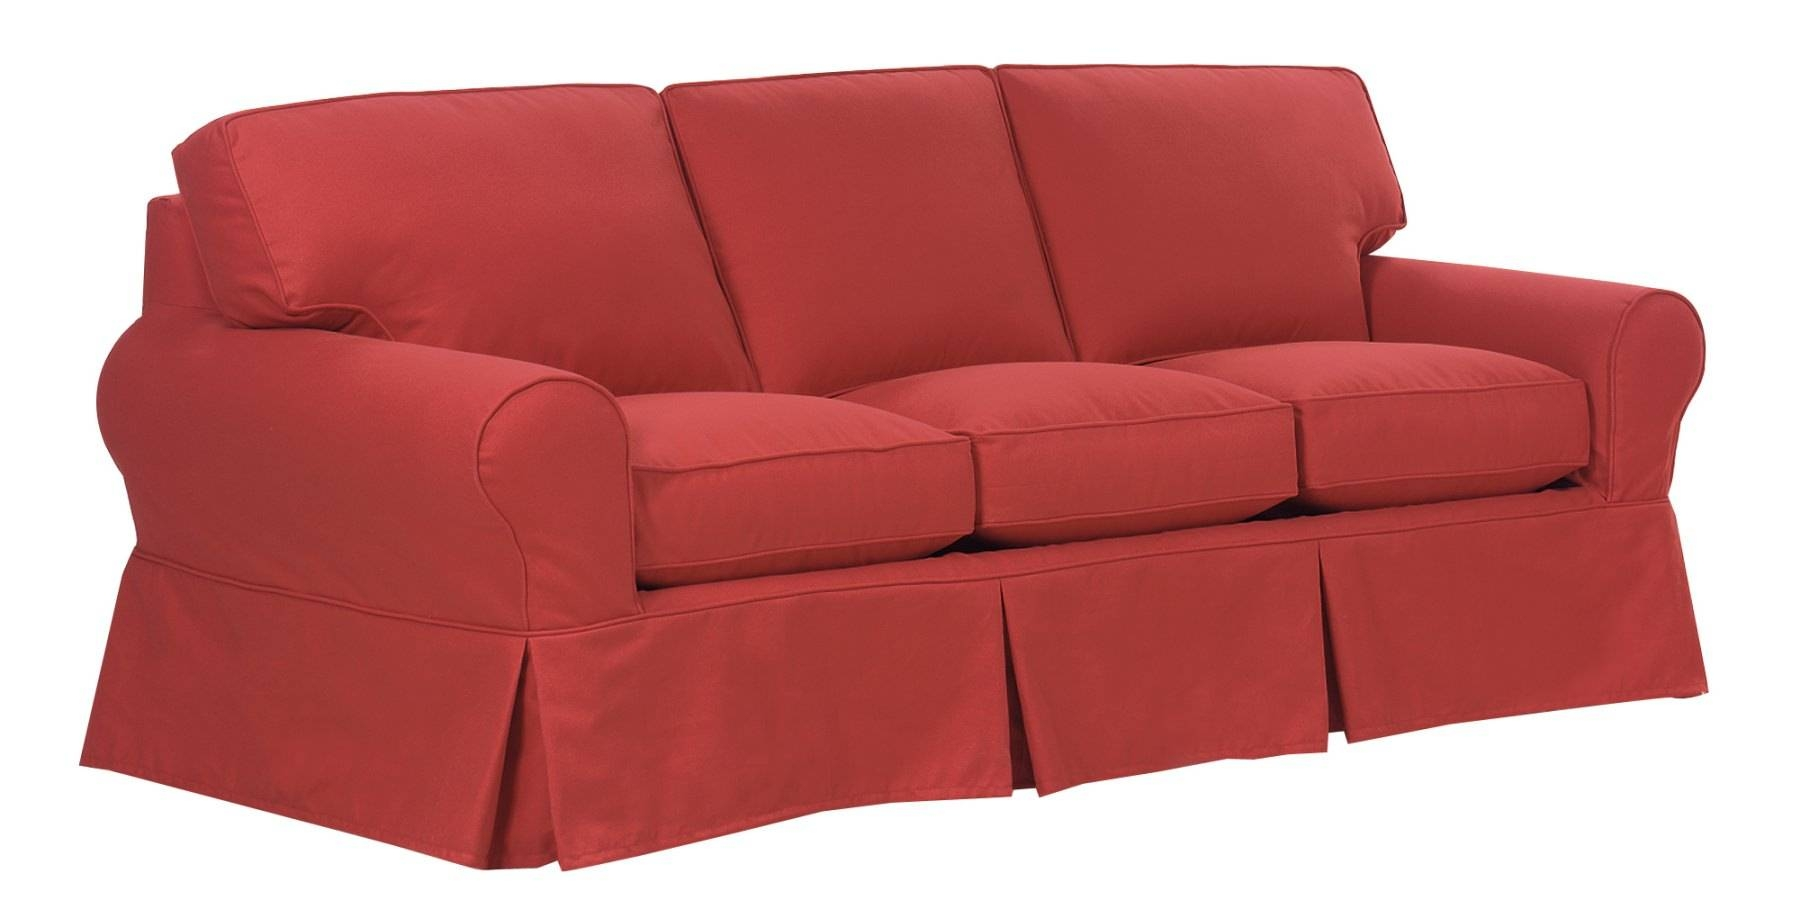 Comfortable Slipcovered Furniture, Slipcover Sofas, Couches Throughout Slipcovers For Sofas And Chairs (View 5 of 30)